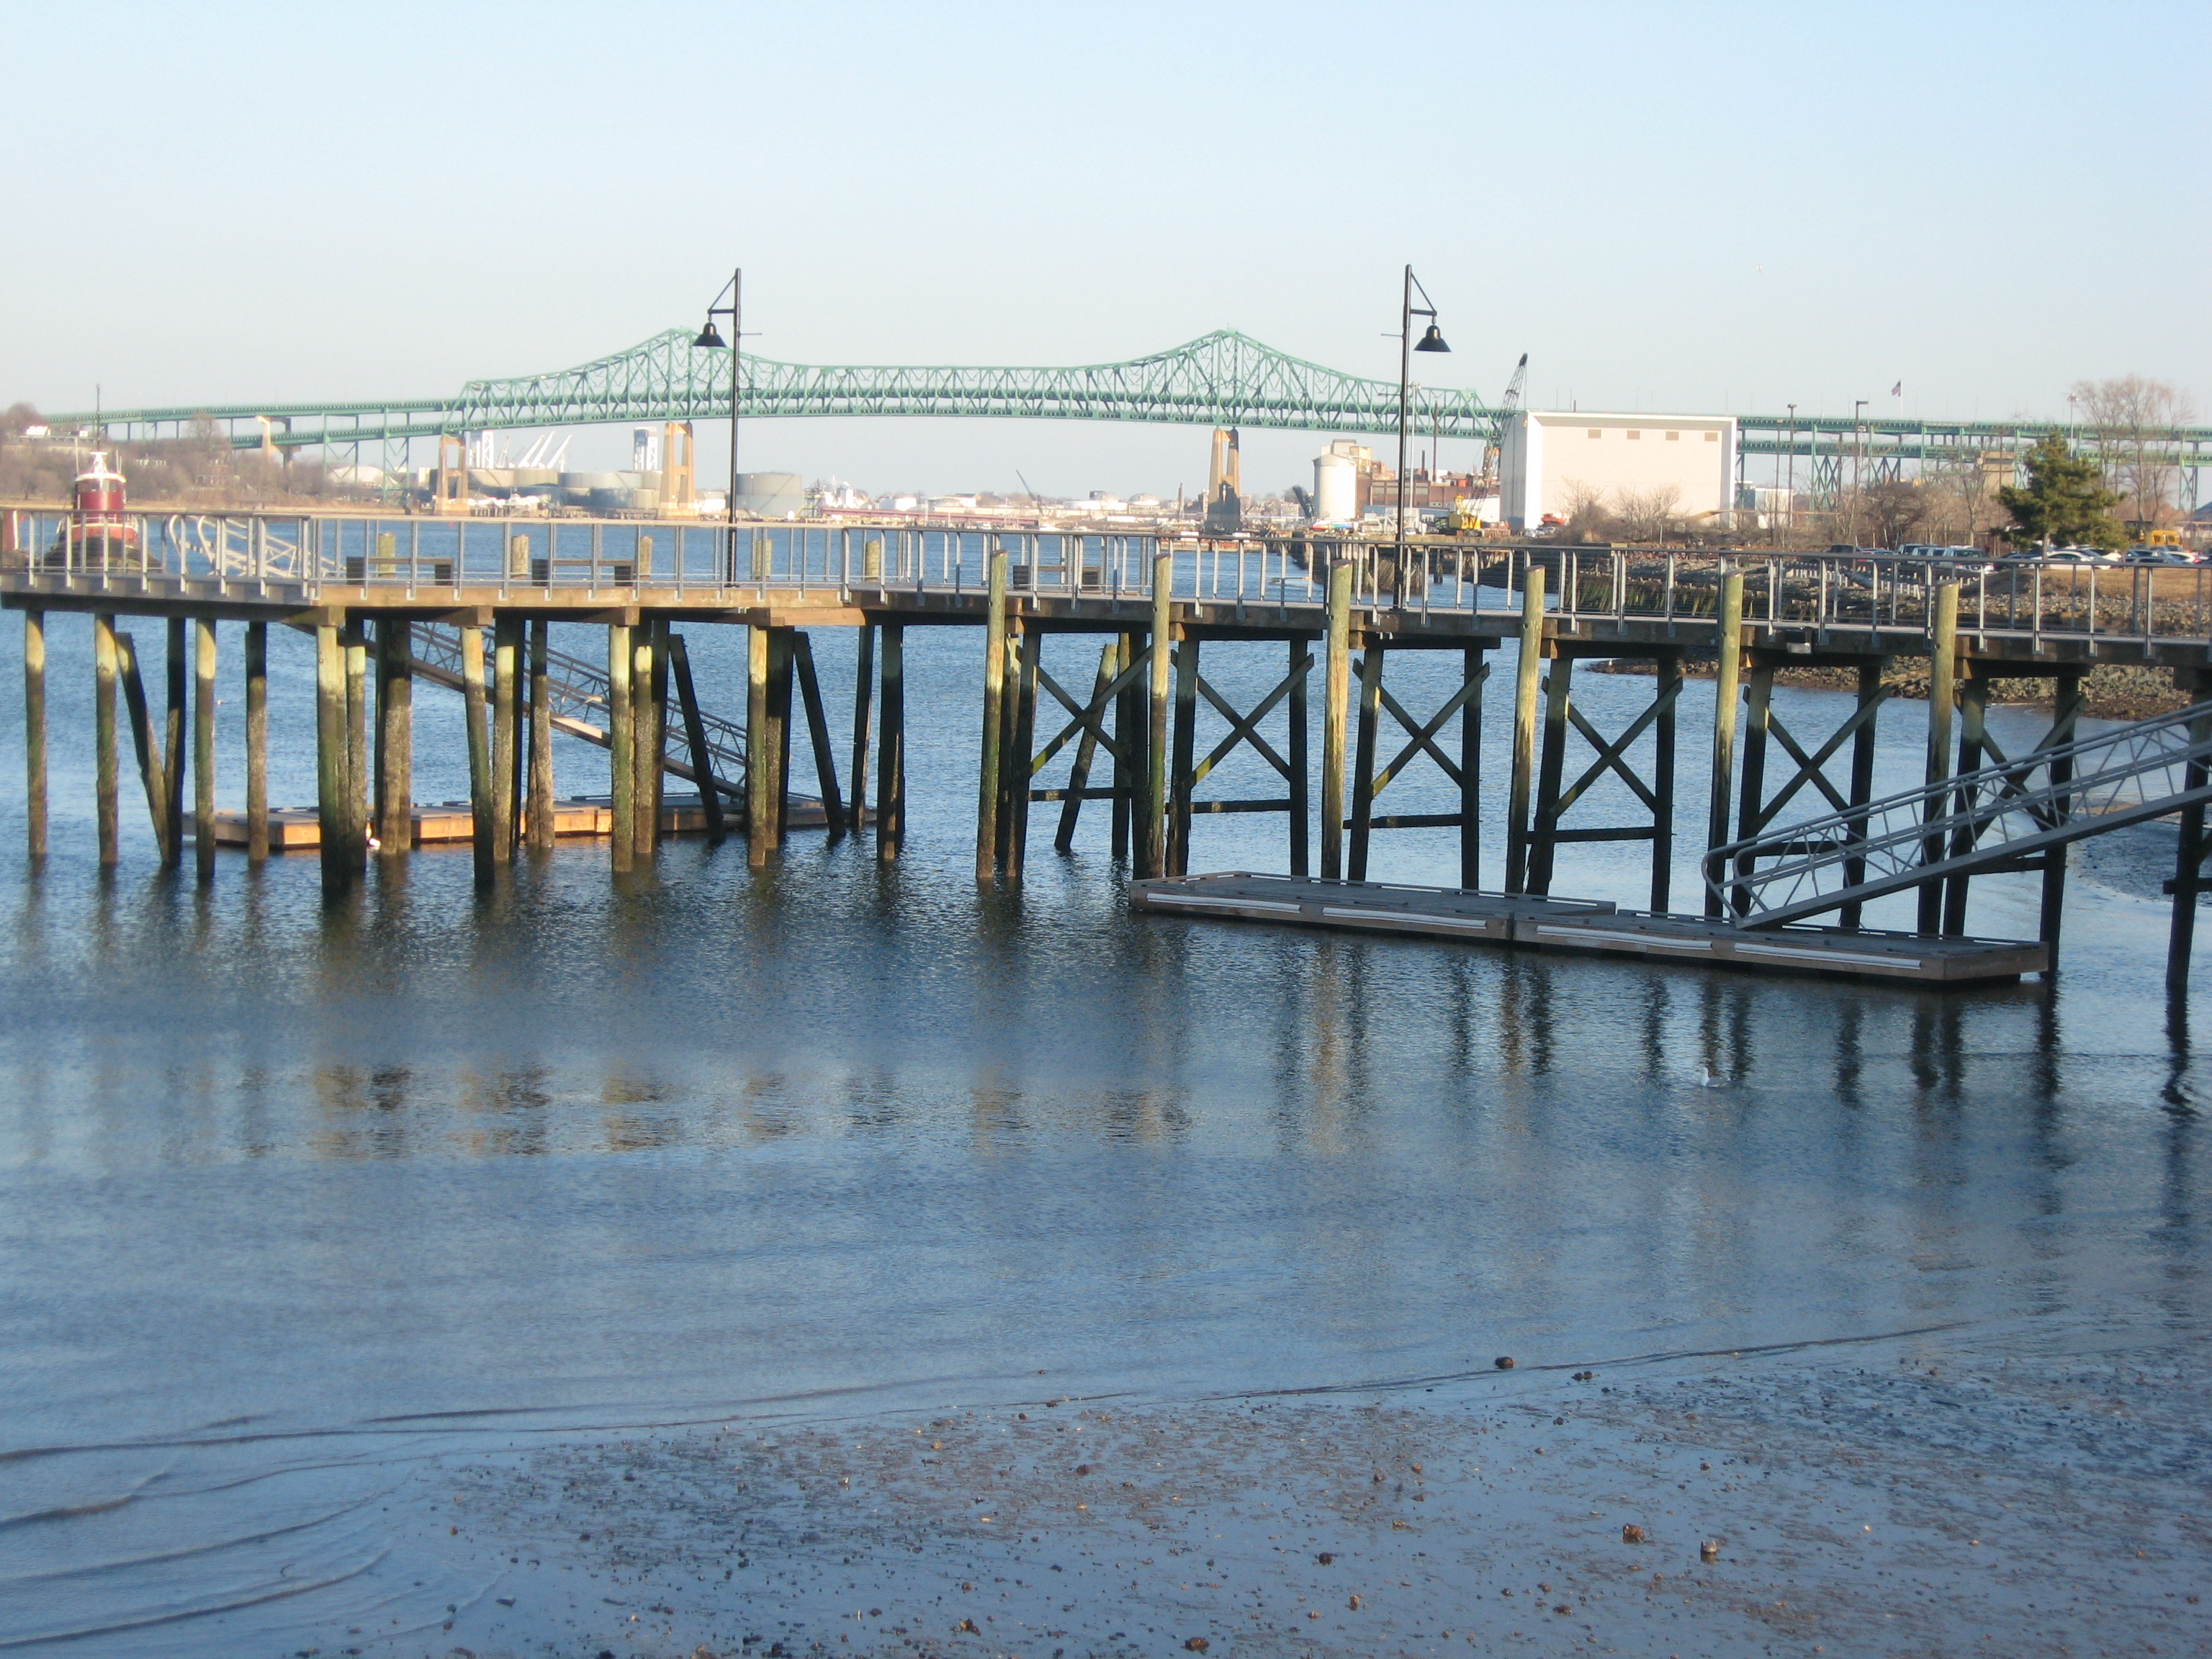 Low tide on the Mystic estuary with pier and Tobin bridge.